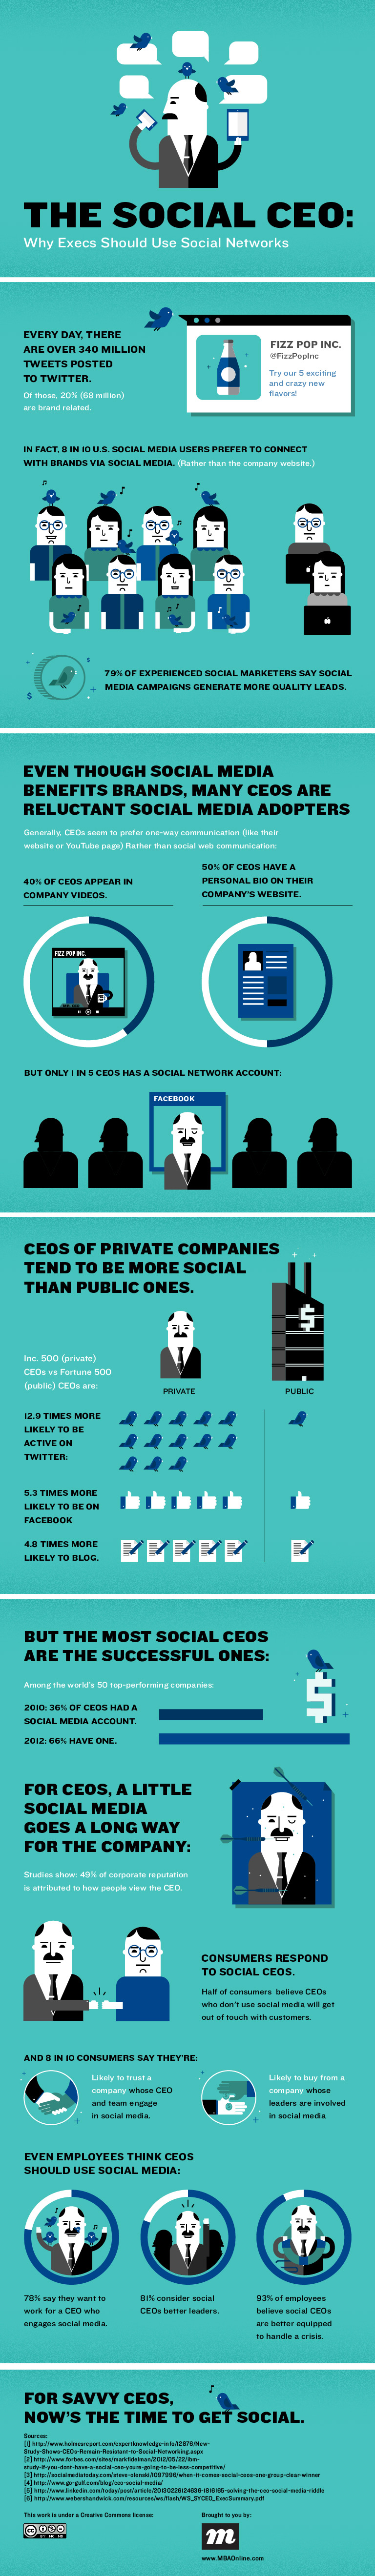 Infographie 38 - Social media and CEO benefits